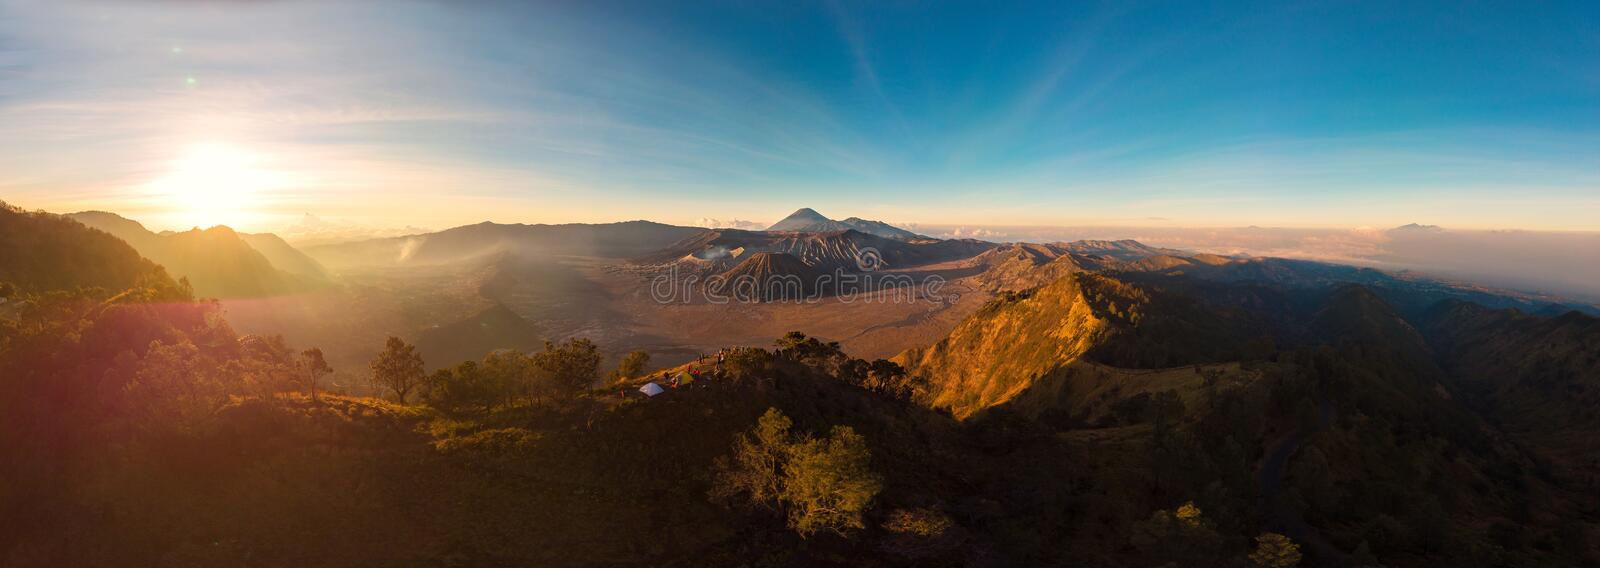 Panorama Aerial view of Sunrise over the Mountain Bromo active v stock image